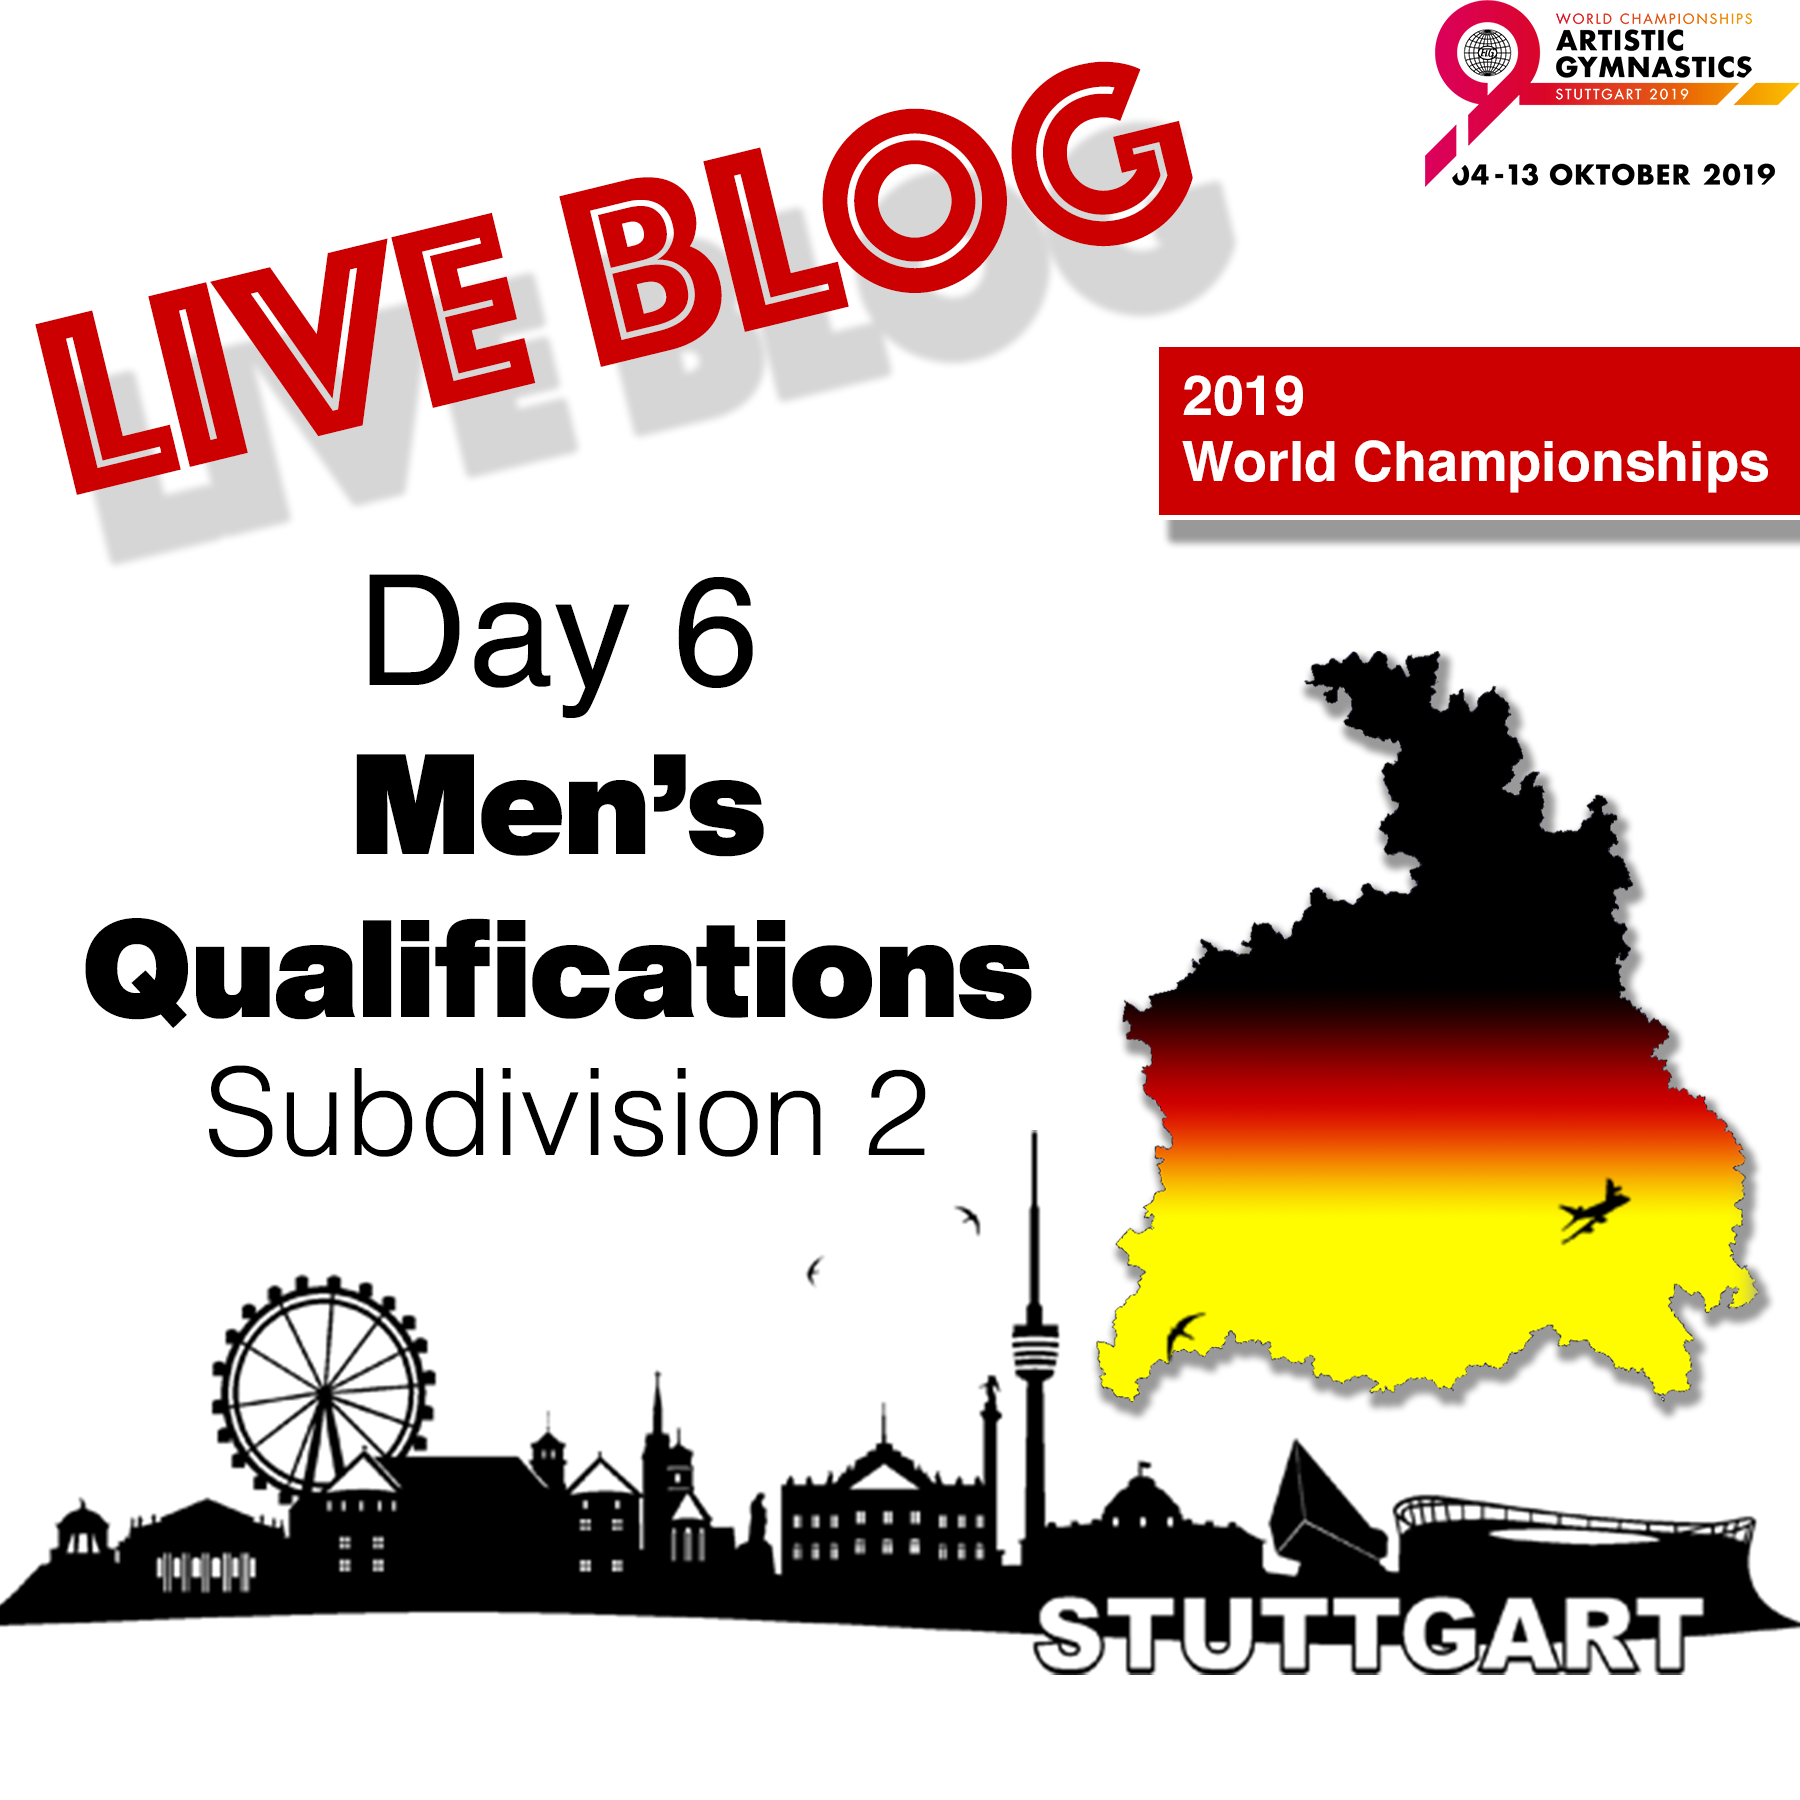 Live Blog: 2019 World Championships – MAG Qualifications – Sub Division 2, Oct. 6th